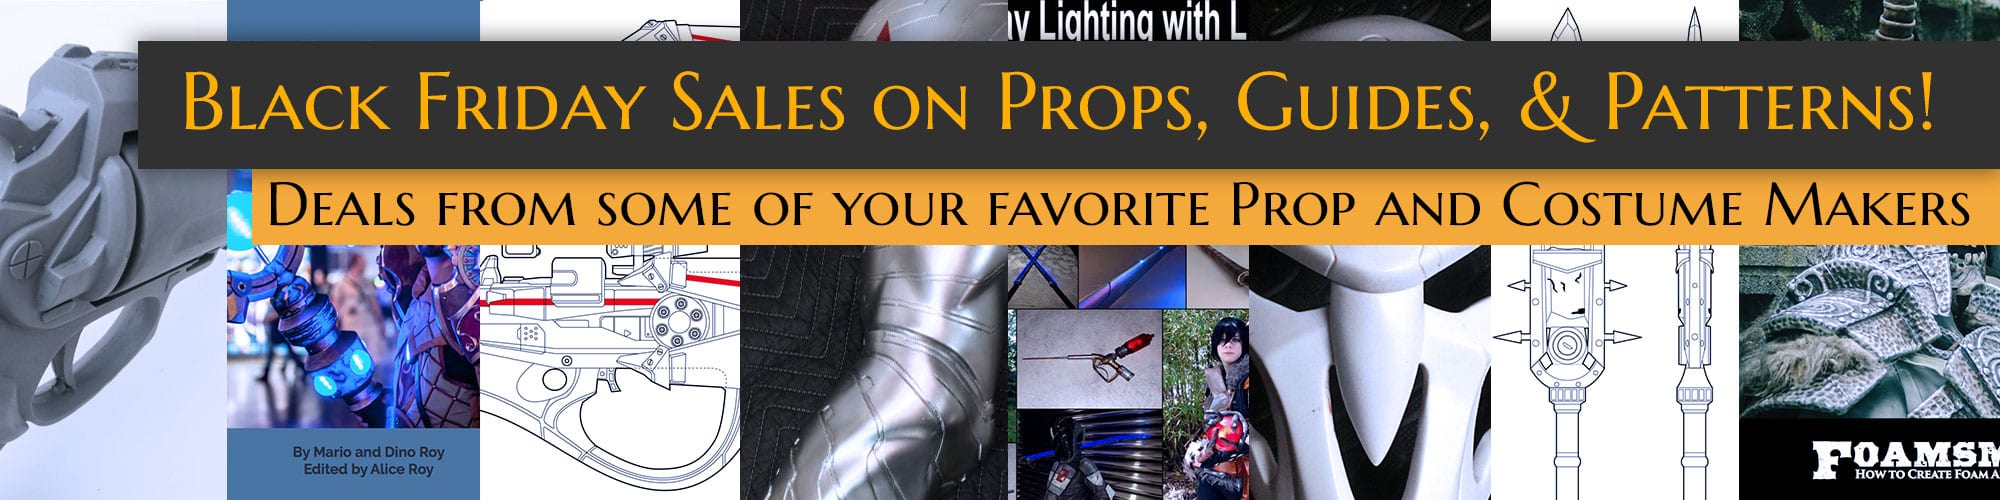 More amazing deals from some incredible prop & costume makers!